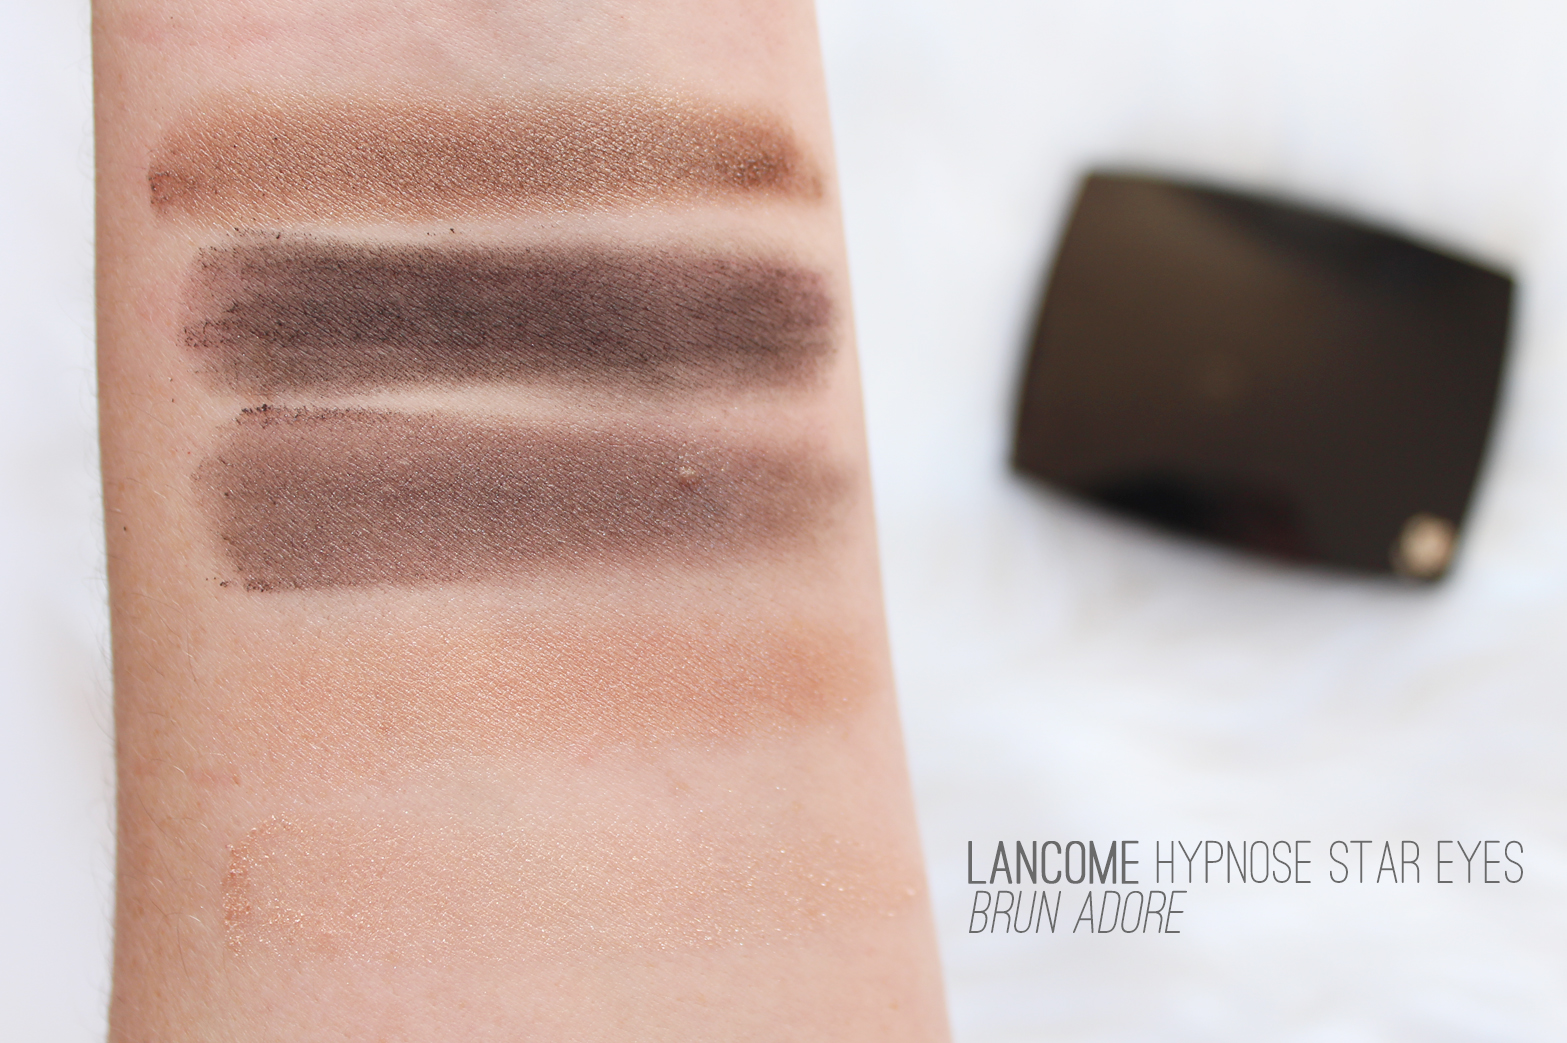 LANCOME | Hypnose Star Eyes 5 Color Palette in Brun Adore - Review + Swatches - CassandraMyee